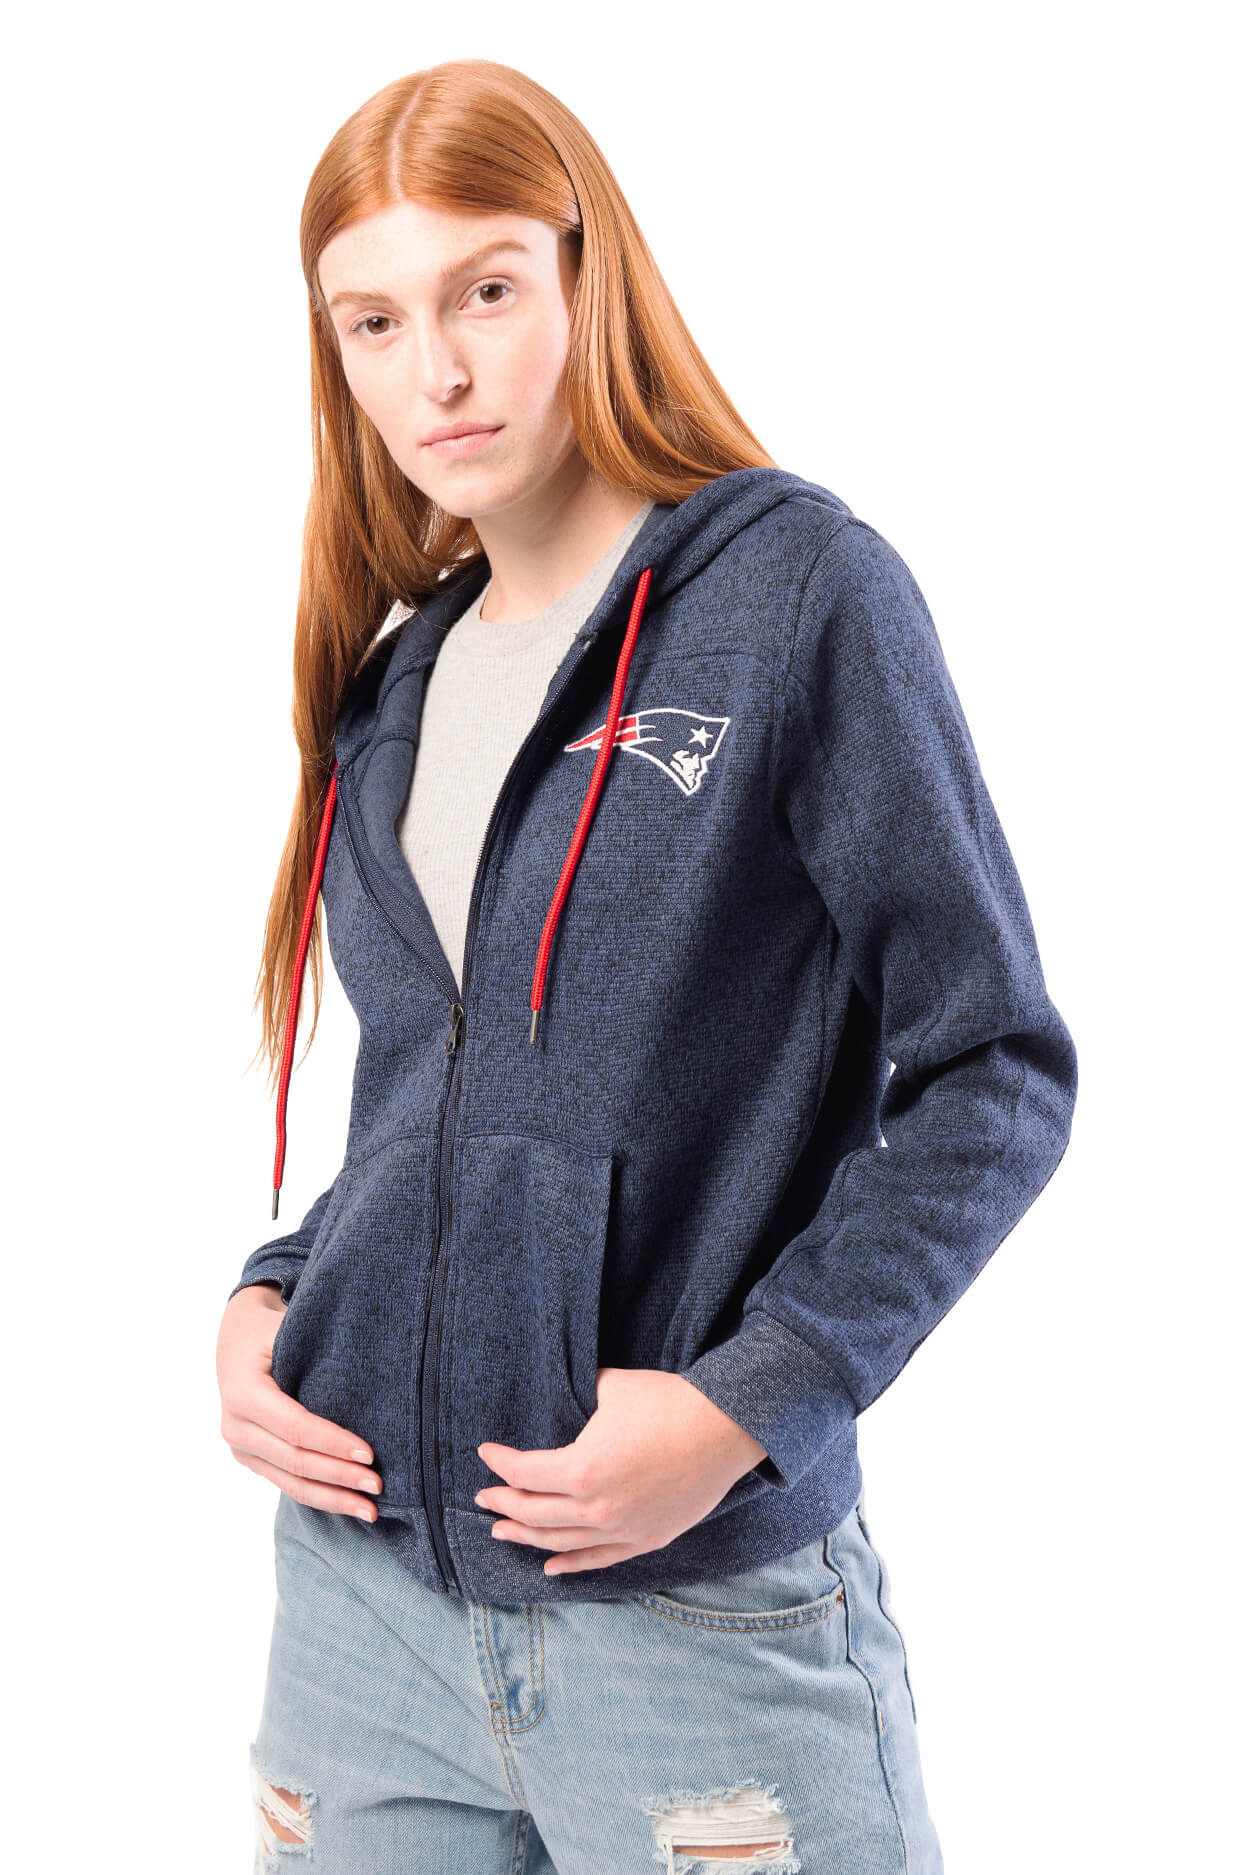 NFL New England Patriots Women's Full Zip Hoodie|New England Patriots